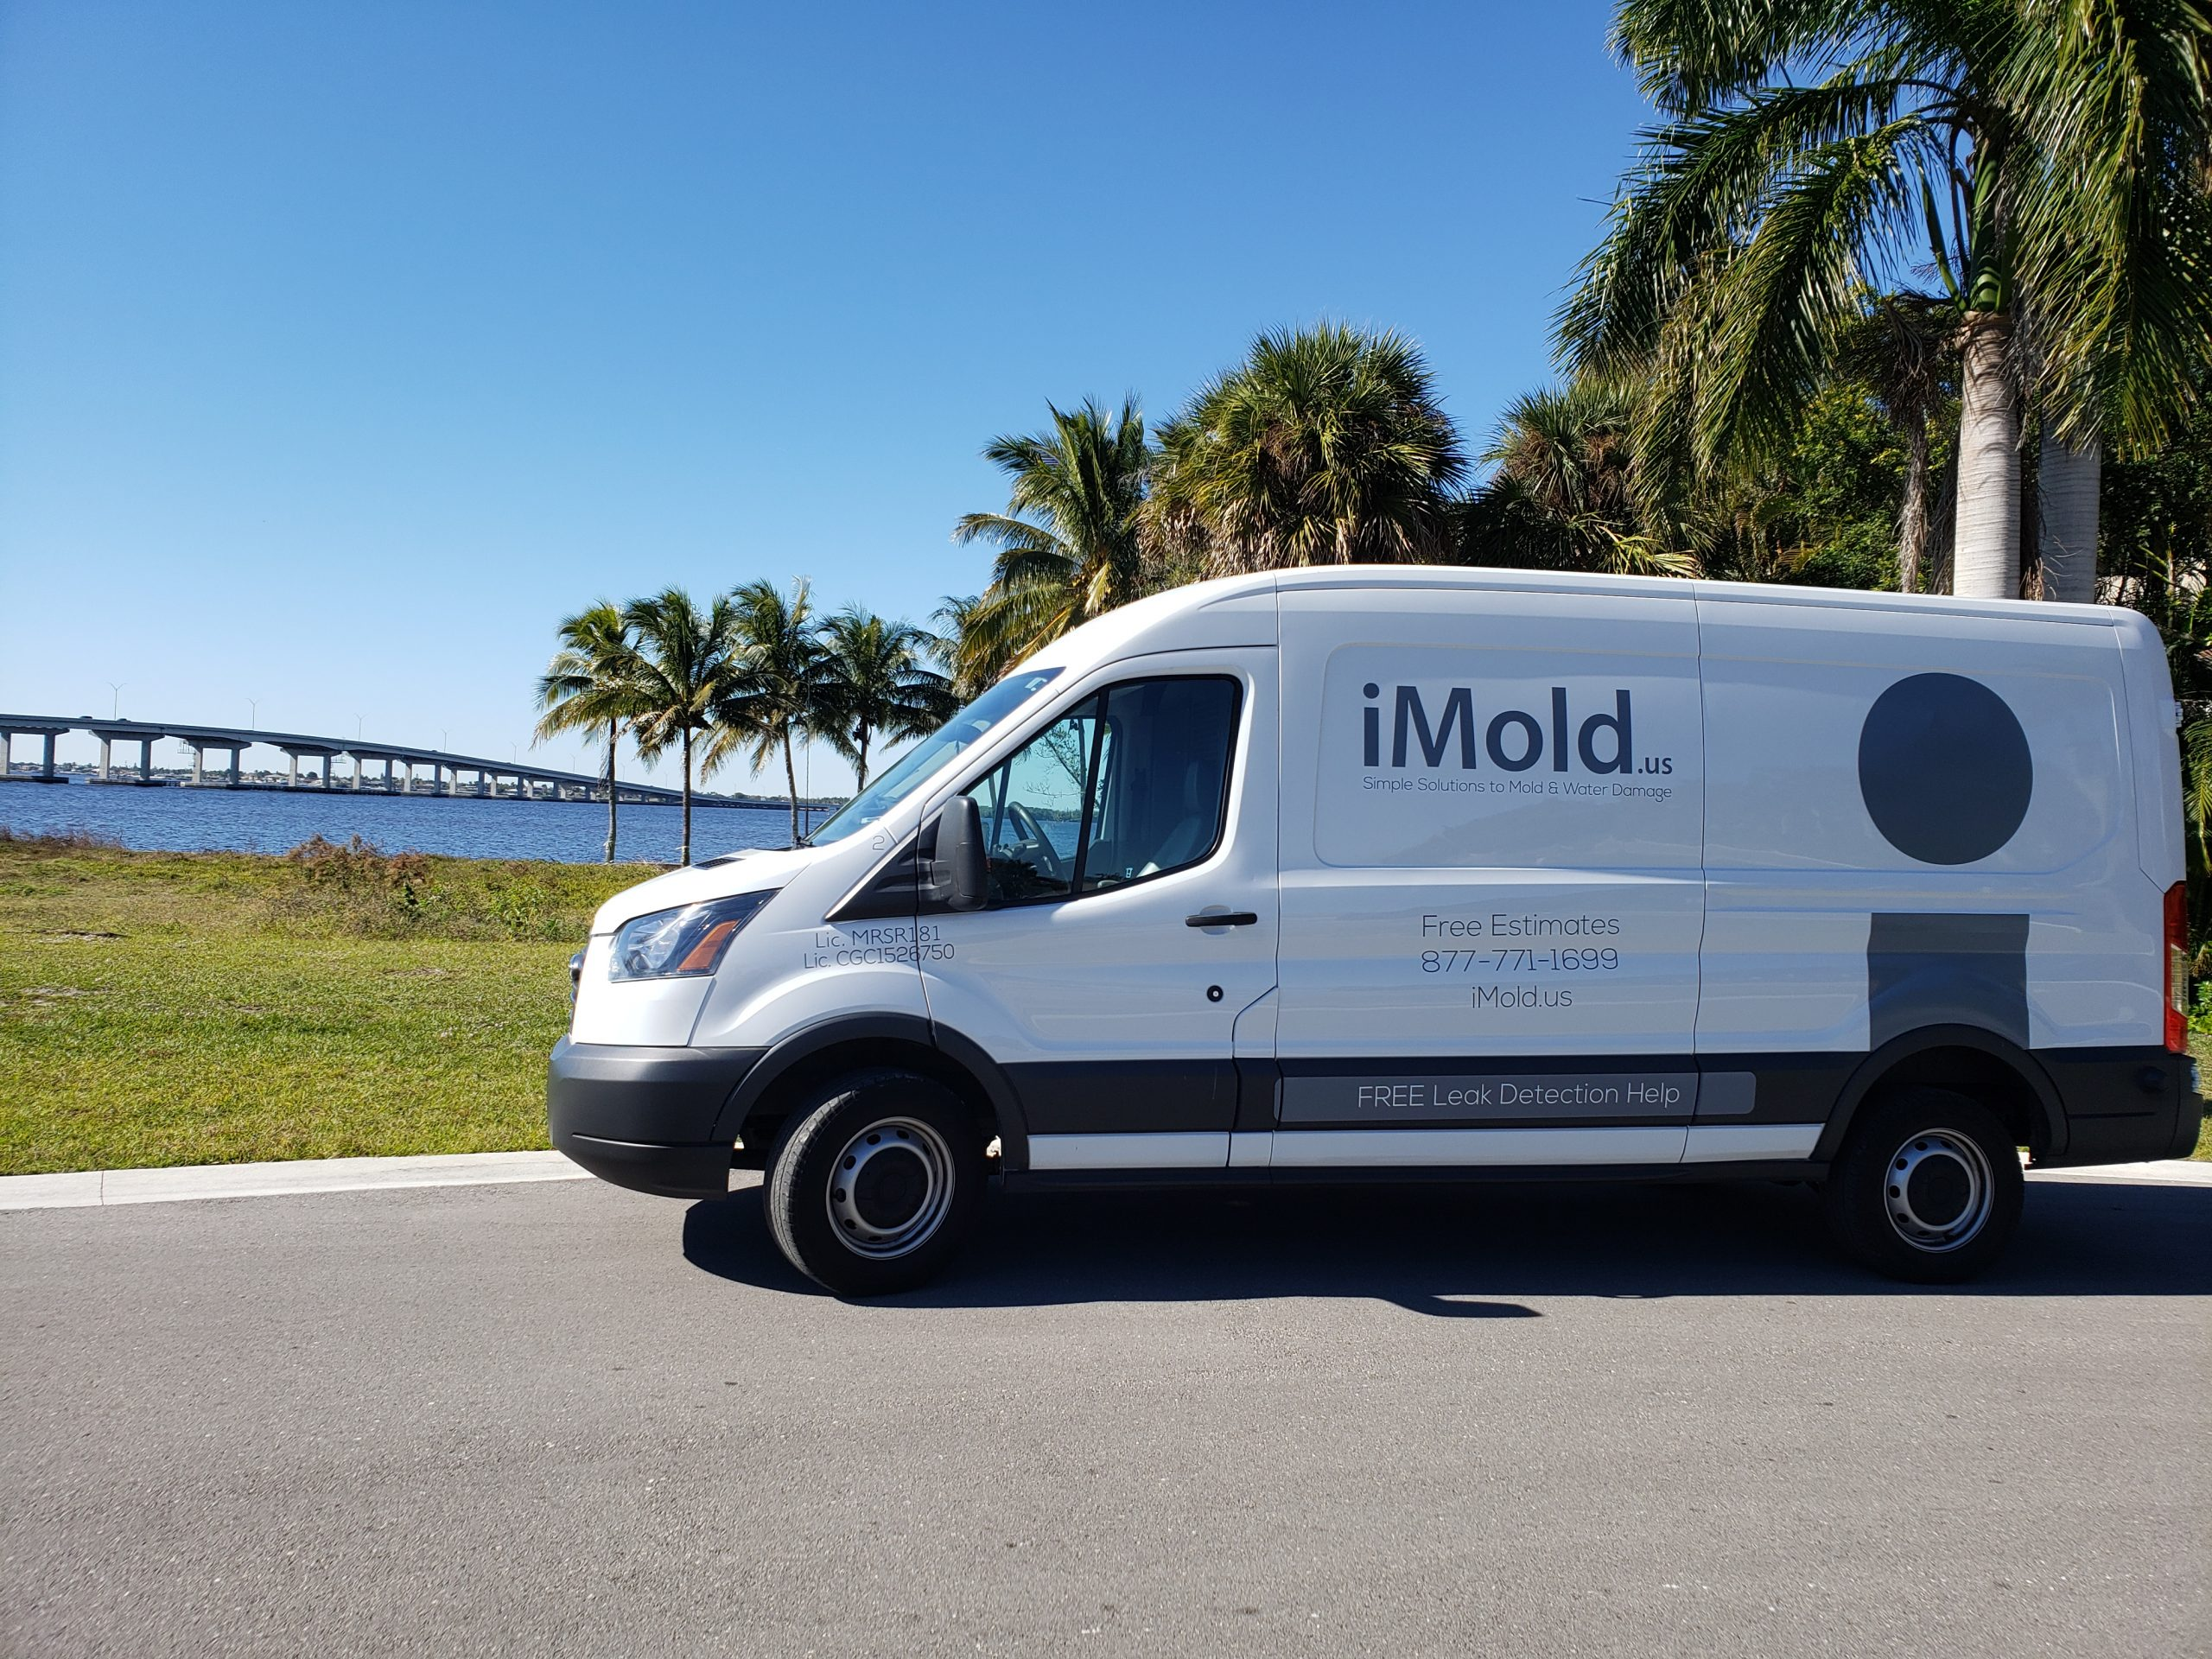 One of our iMold vans